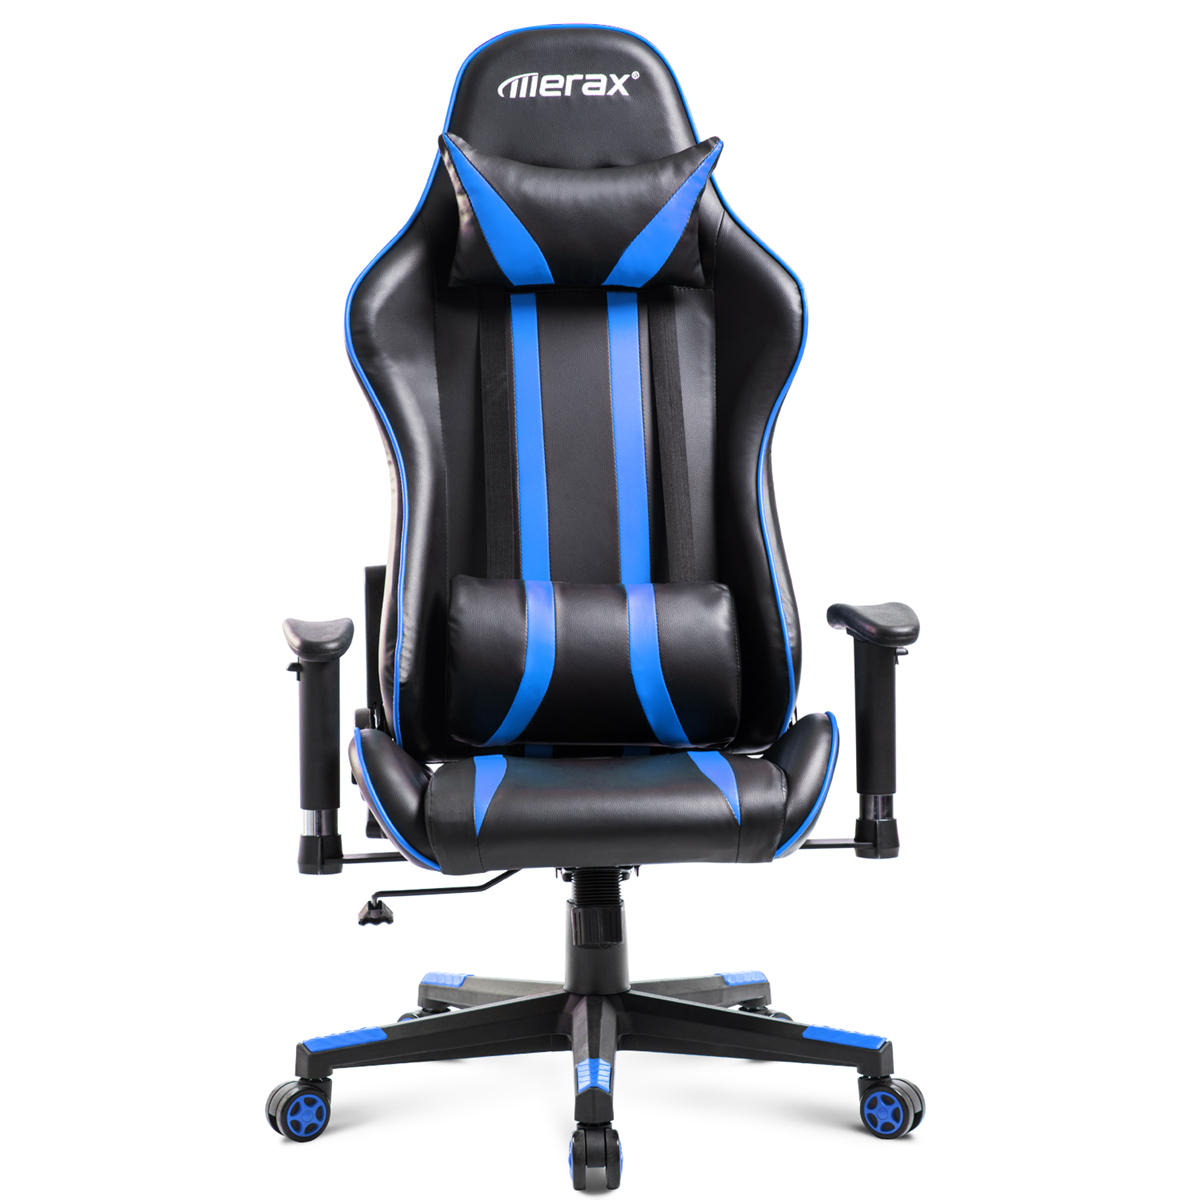 Fantastic Merax Office Chair Ergonomic High Back Racing Gaming Chair Computer Chair Pu Leather Adjustable Height Rotating Lift Chair Folding Chair Evergreenethics Interior Chair Design Evergreenethicsorg